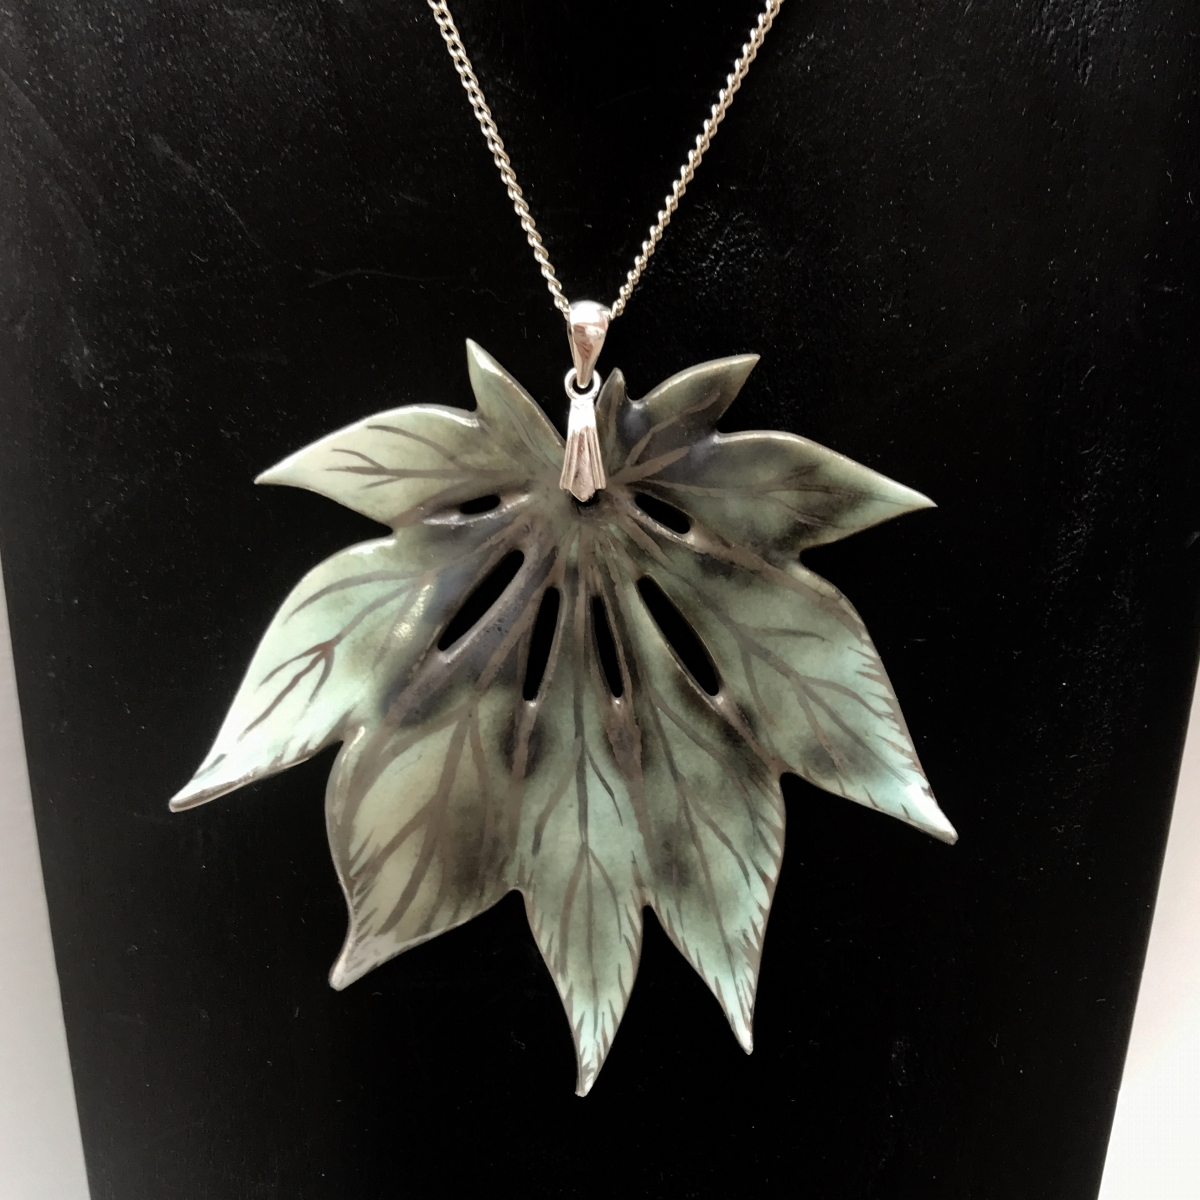 Ceramic Leaf Necklace by Sonya Ceramic Art 'Ceramics Inspired by Nature'